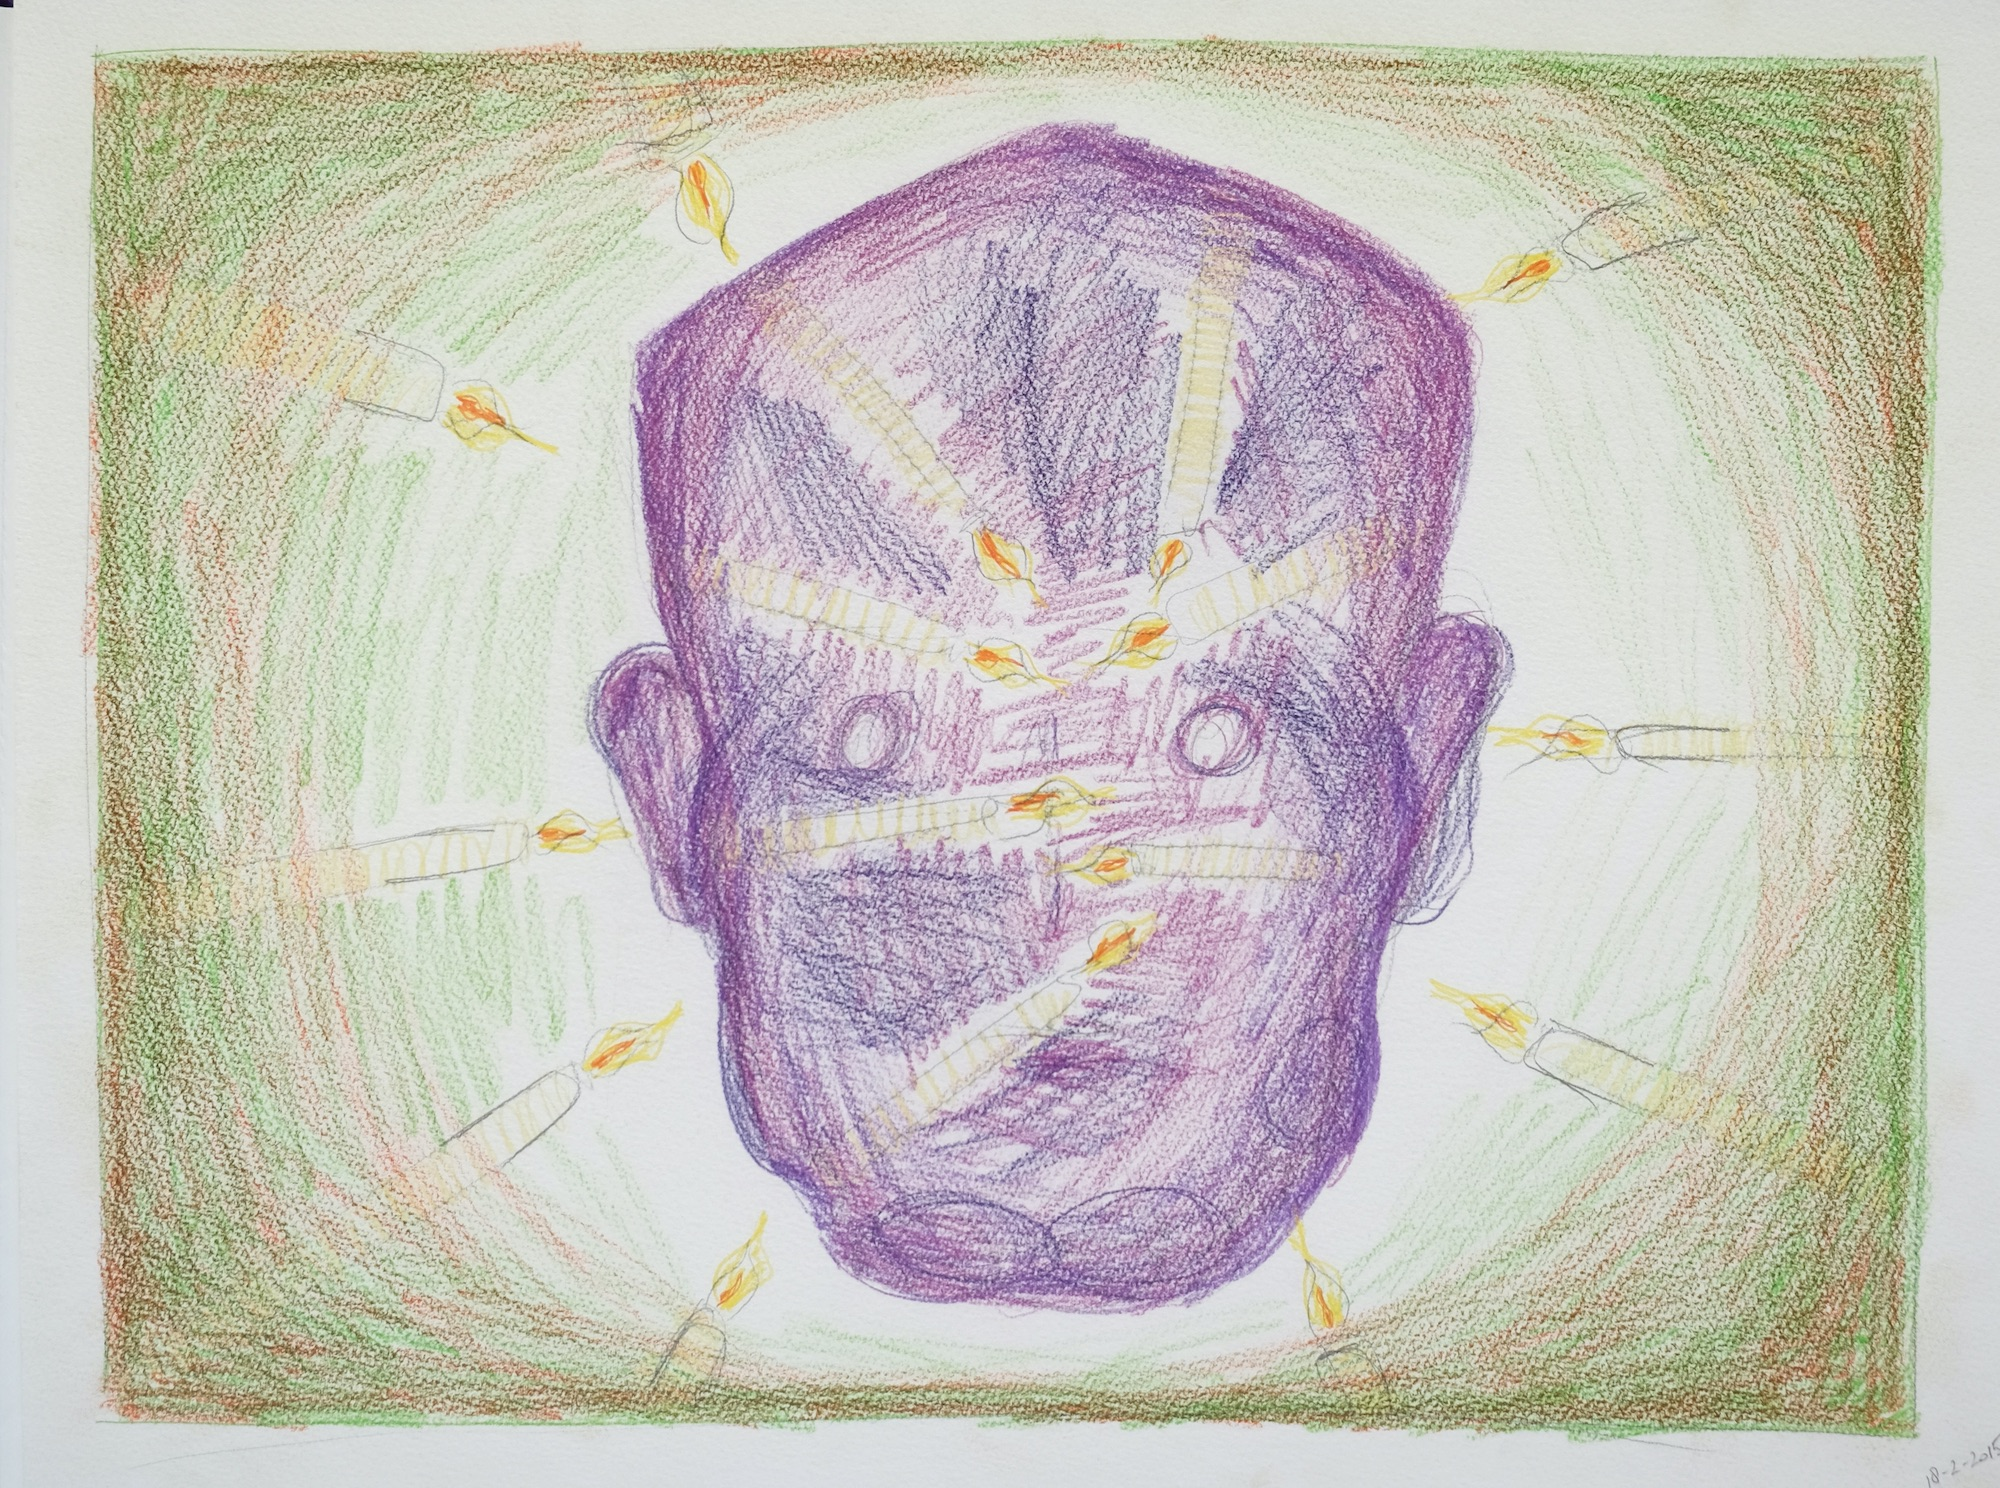 Head and candles. 38 x 50 cm. Coloured pencil on paper. 2015.